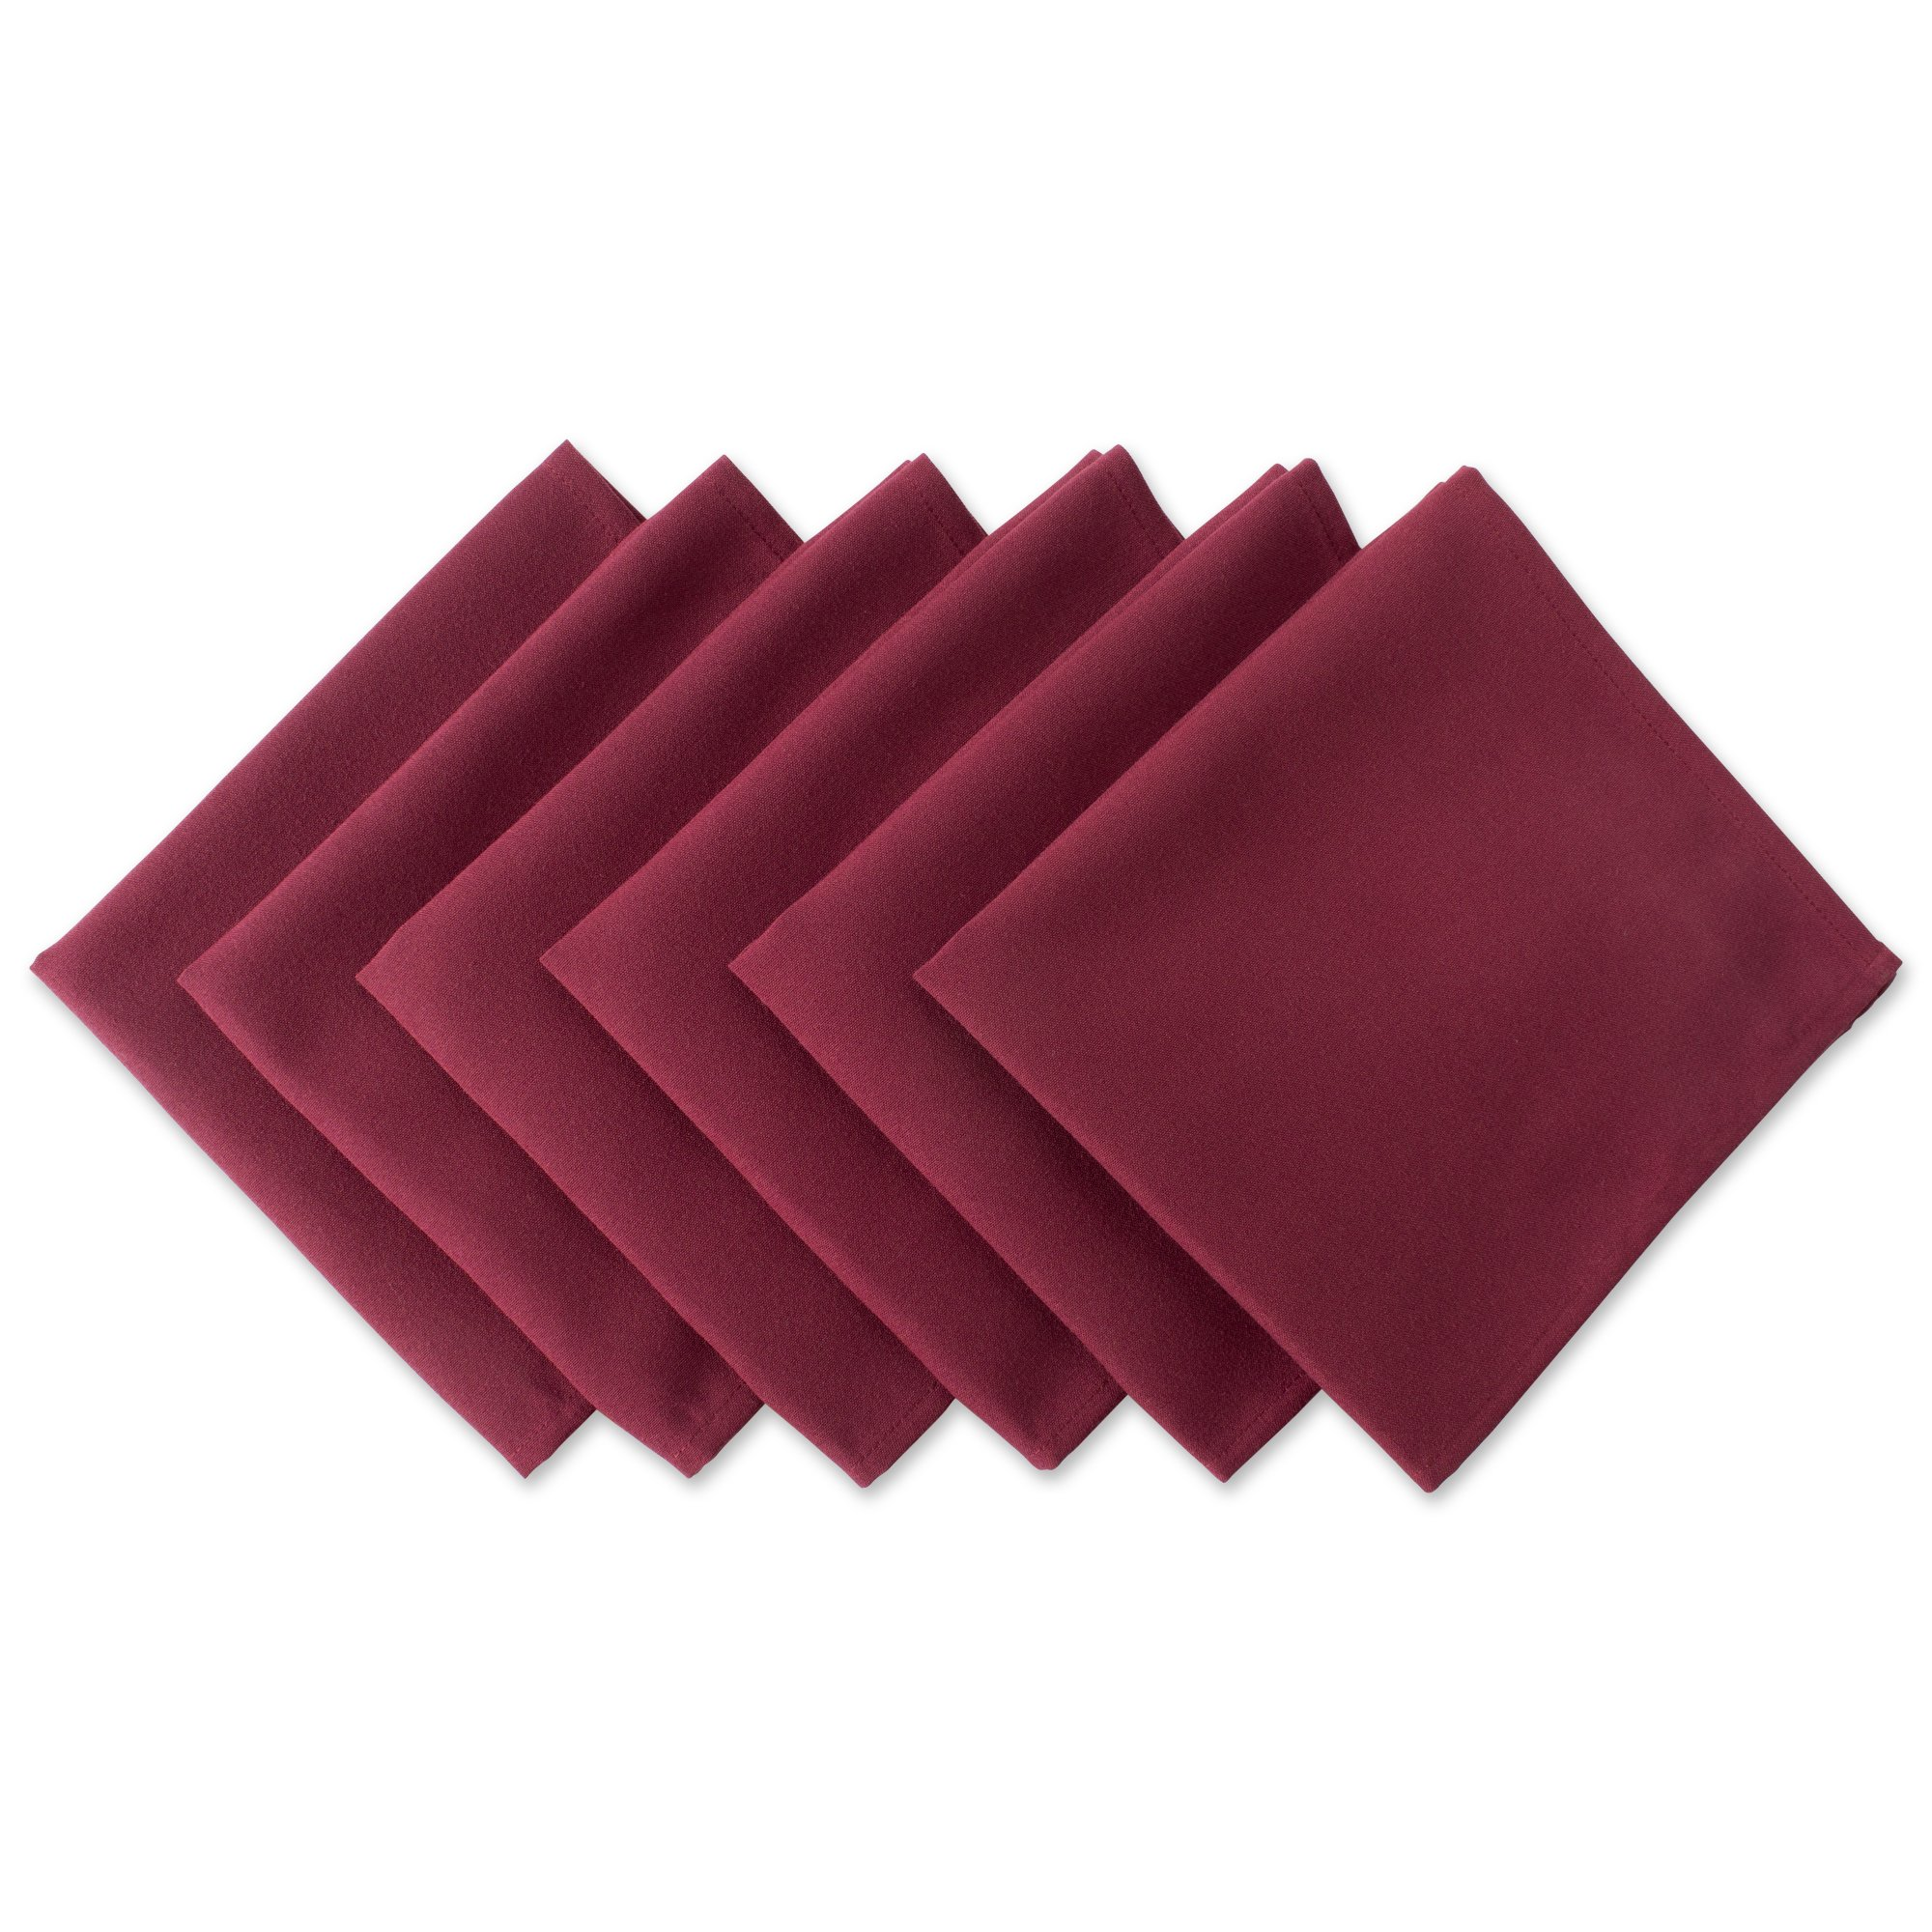 DII Wrinkle Resistant 20x20'' Polyester Napkin, Pack of 6, Wine Red  - Perfect for Brunch, Catering Events, Thanksgiving, Dinner Parties, Showers, Weddings and Everyday Use